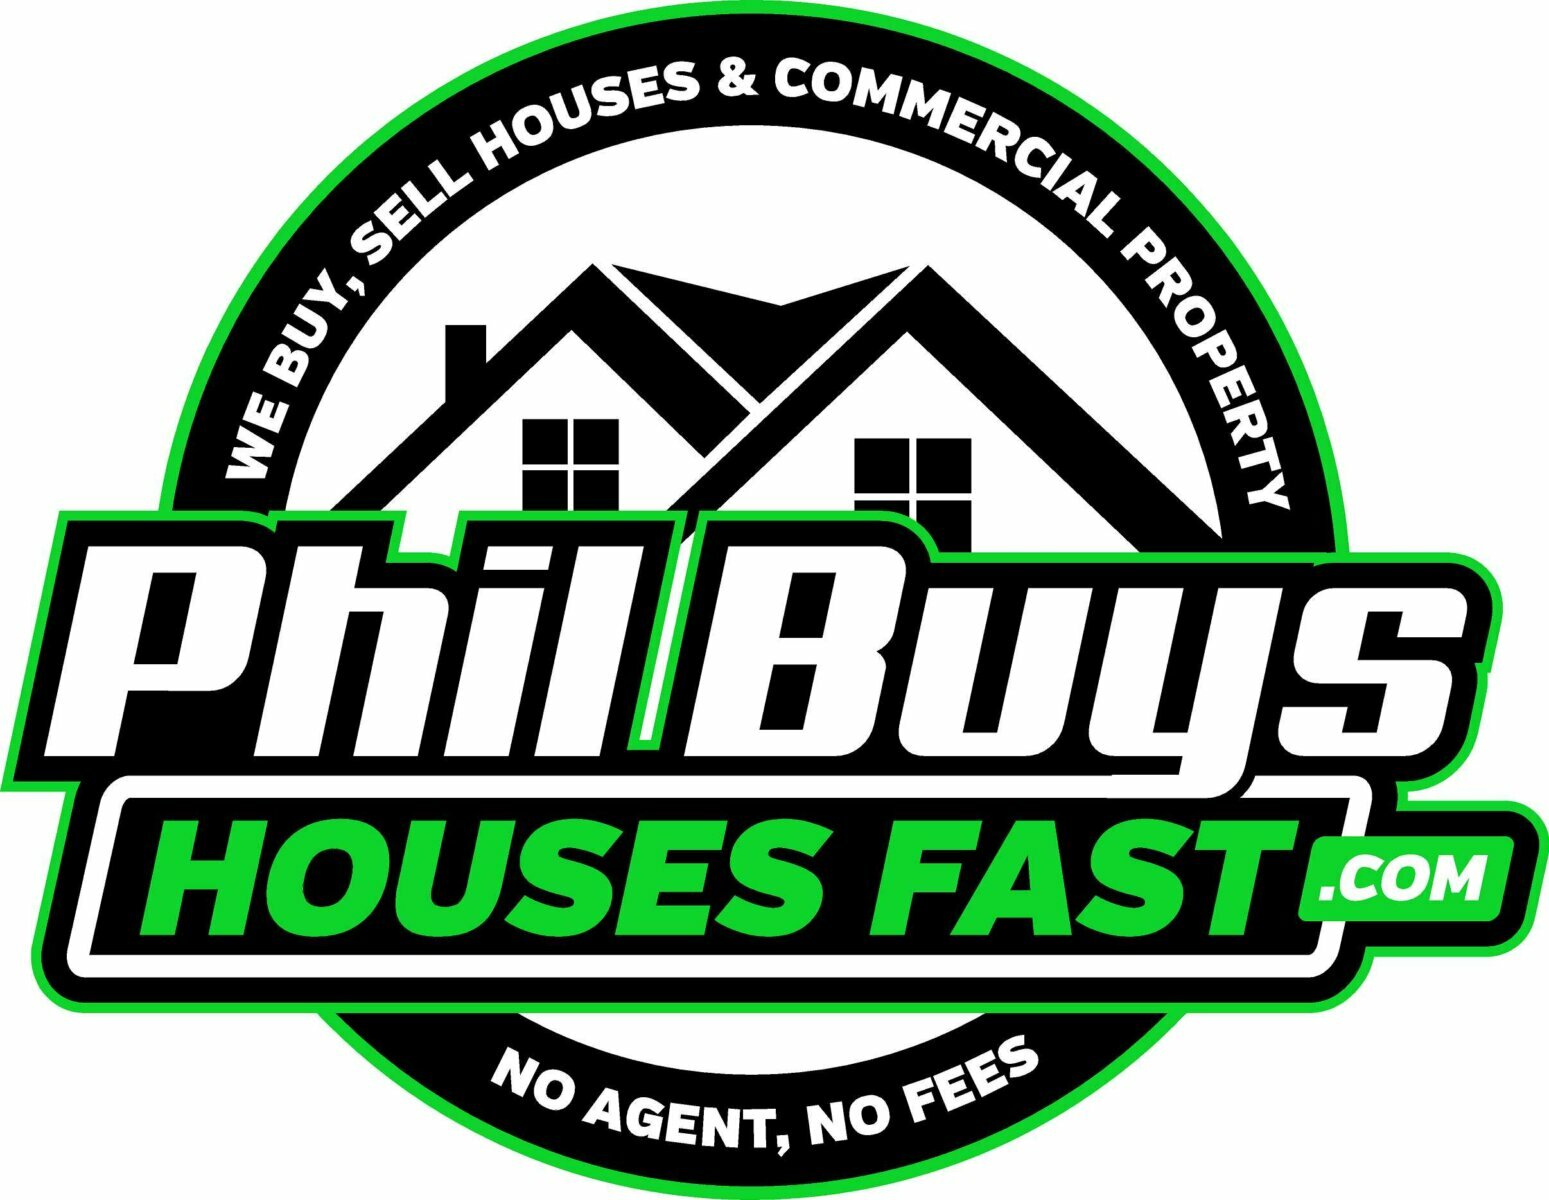 Phil Buys Houses Fast   logo